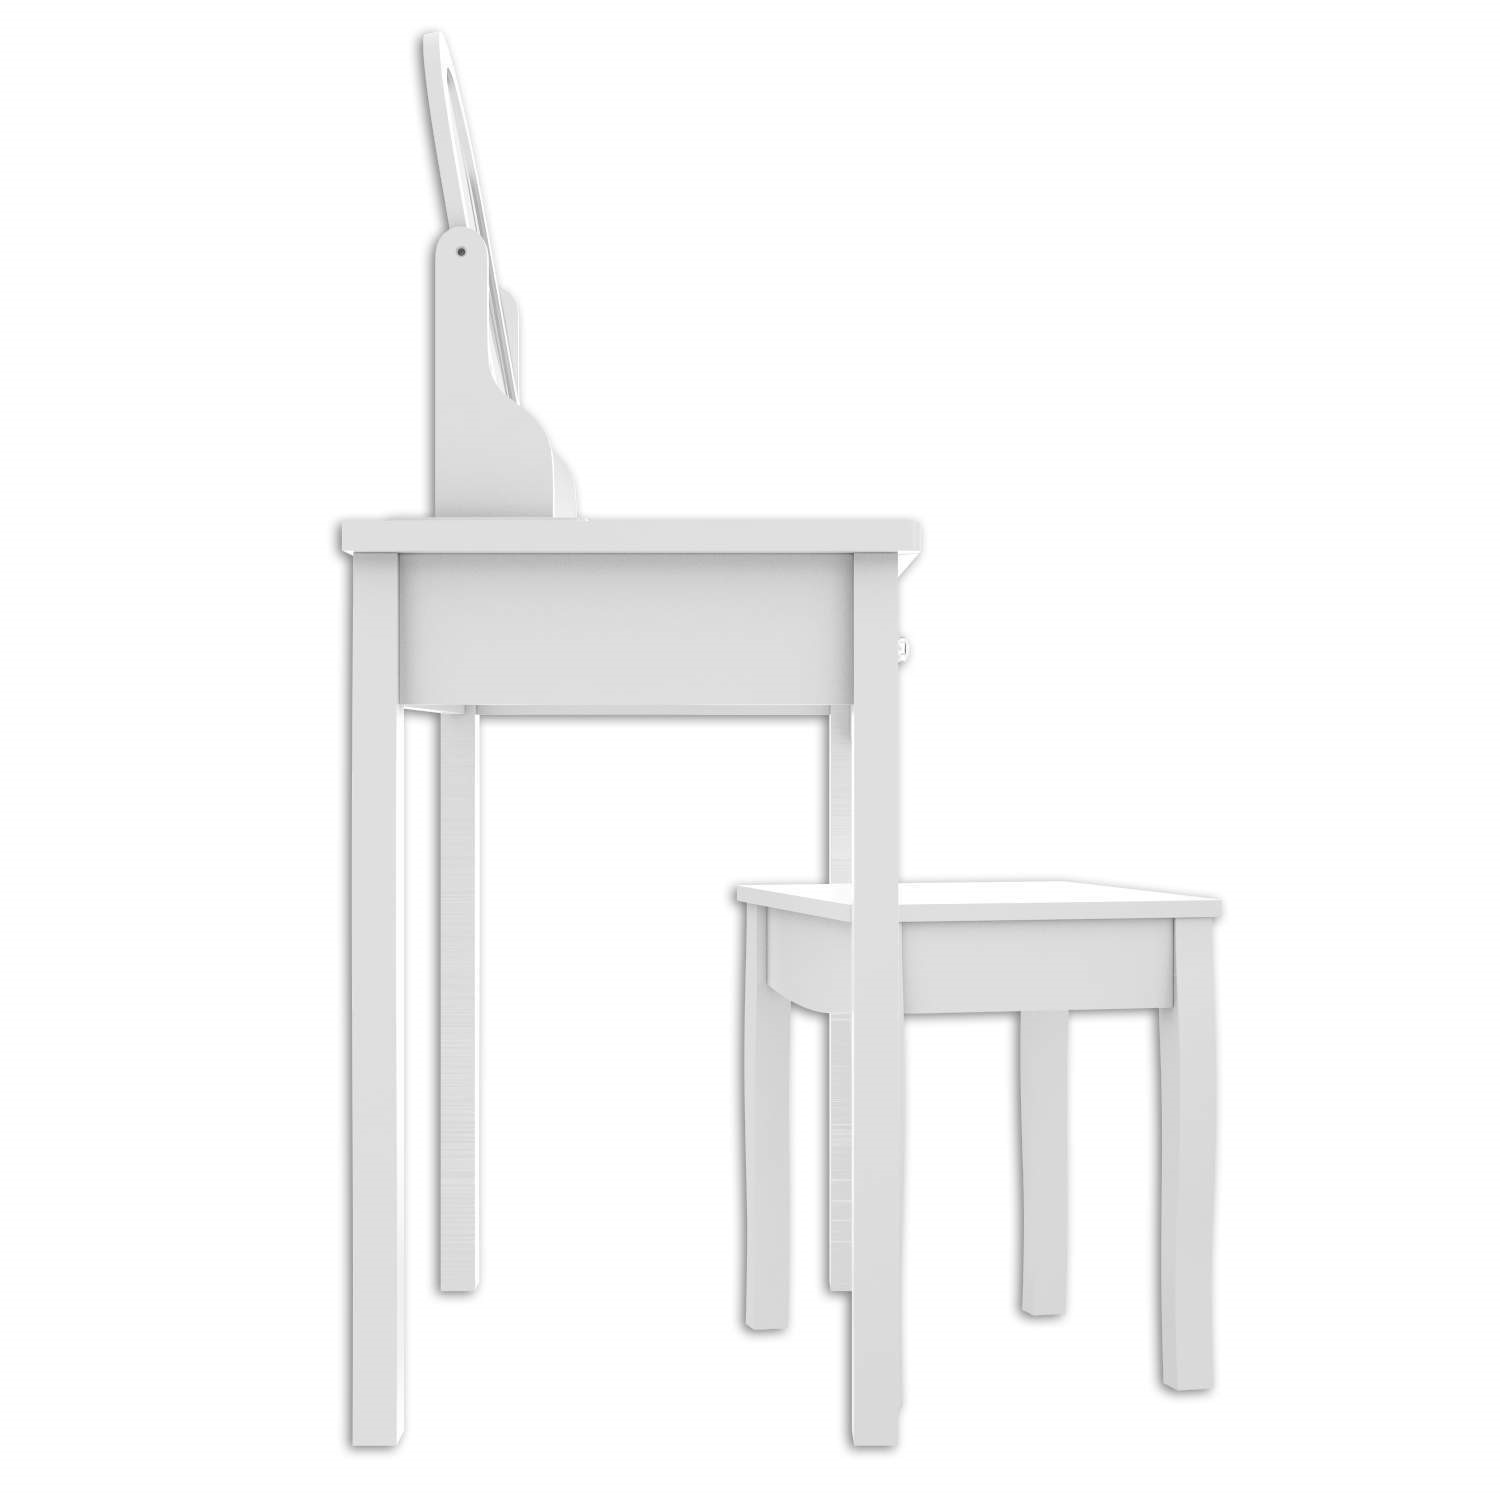 Admirable Victoria Girls White Dressing Table With Stool Mirror Ncnpc Chair Design For Home Ncnpcorg